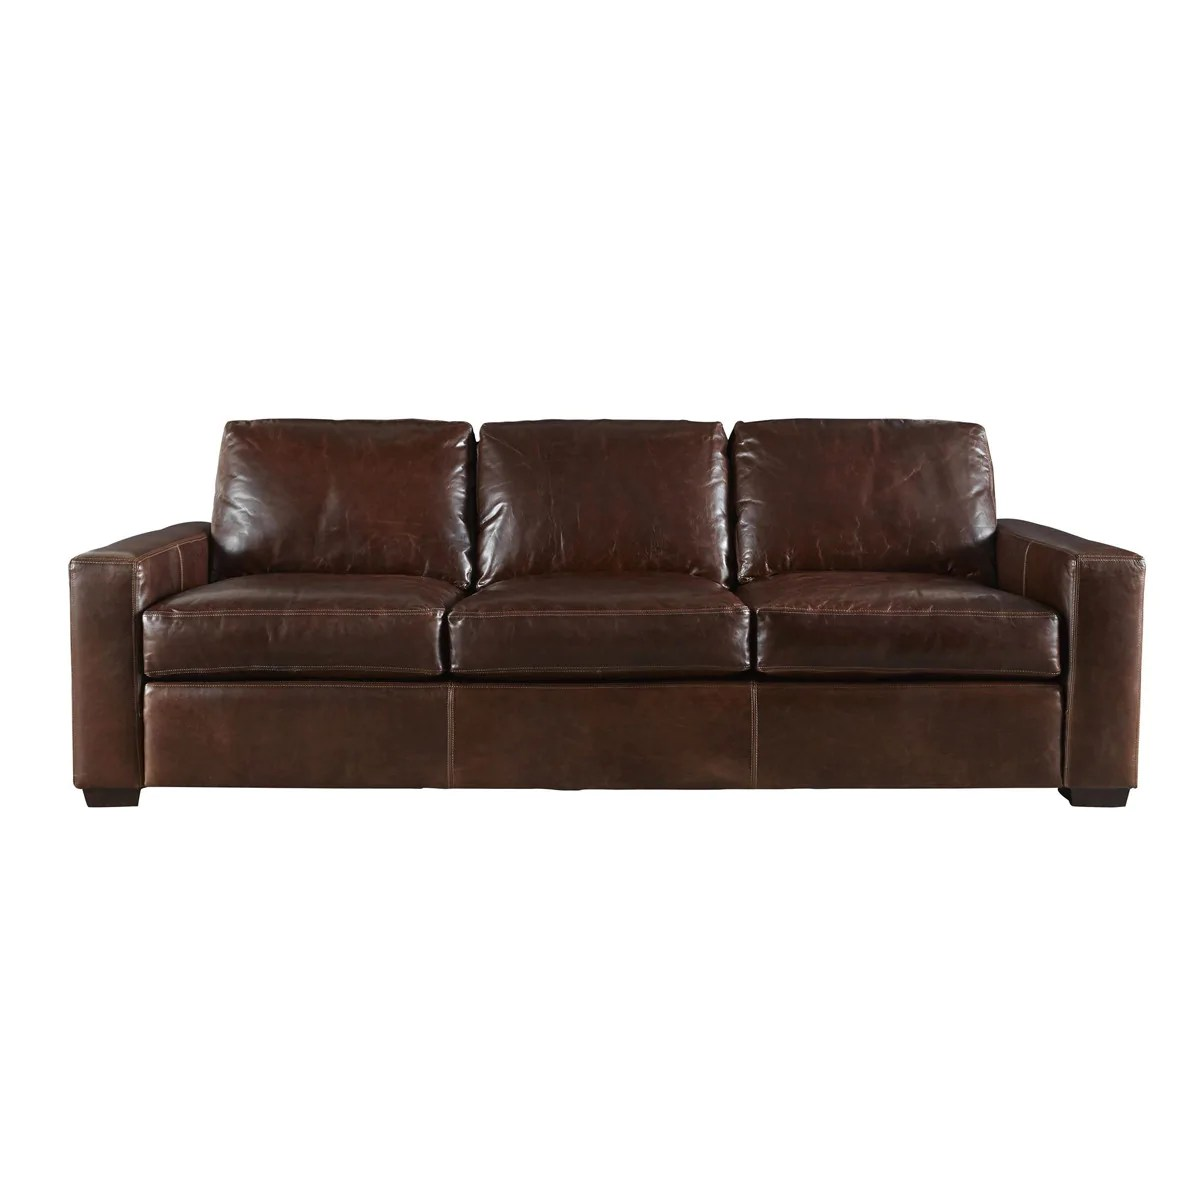 BENTLEY LARGE LEATHER SOFA